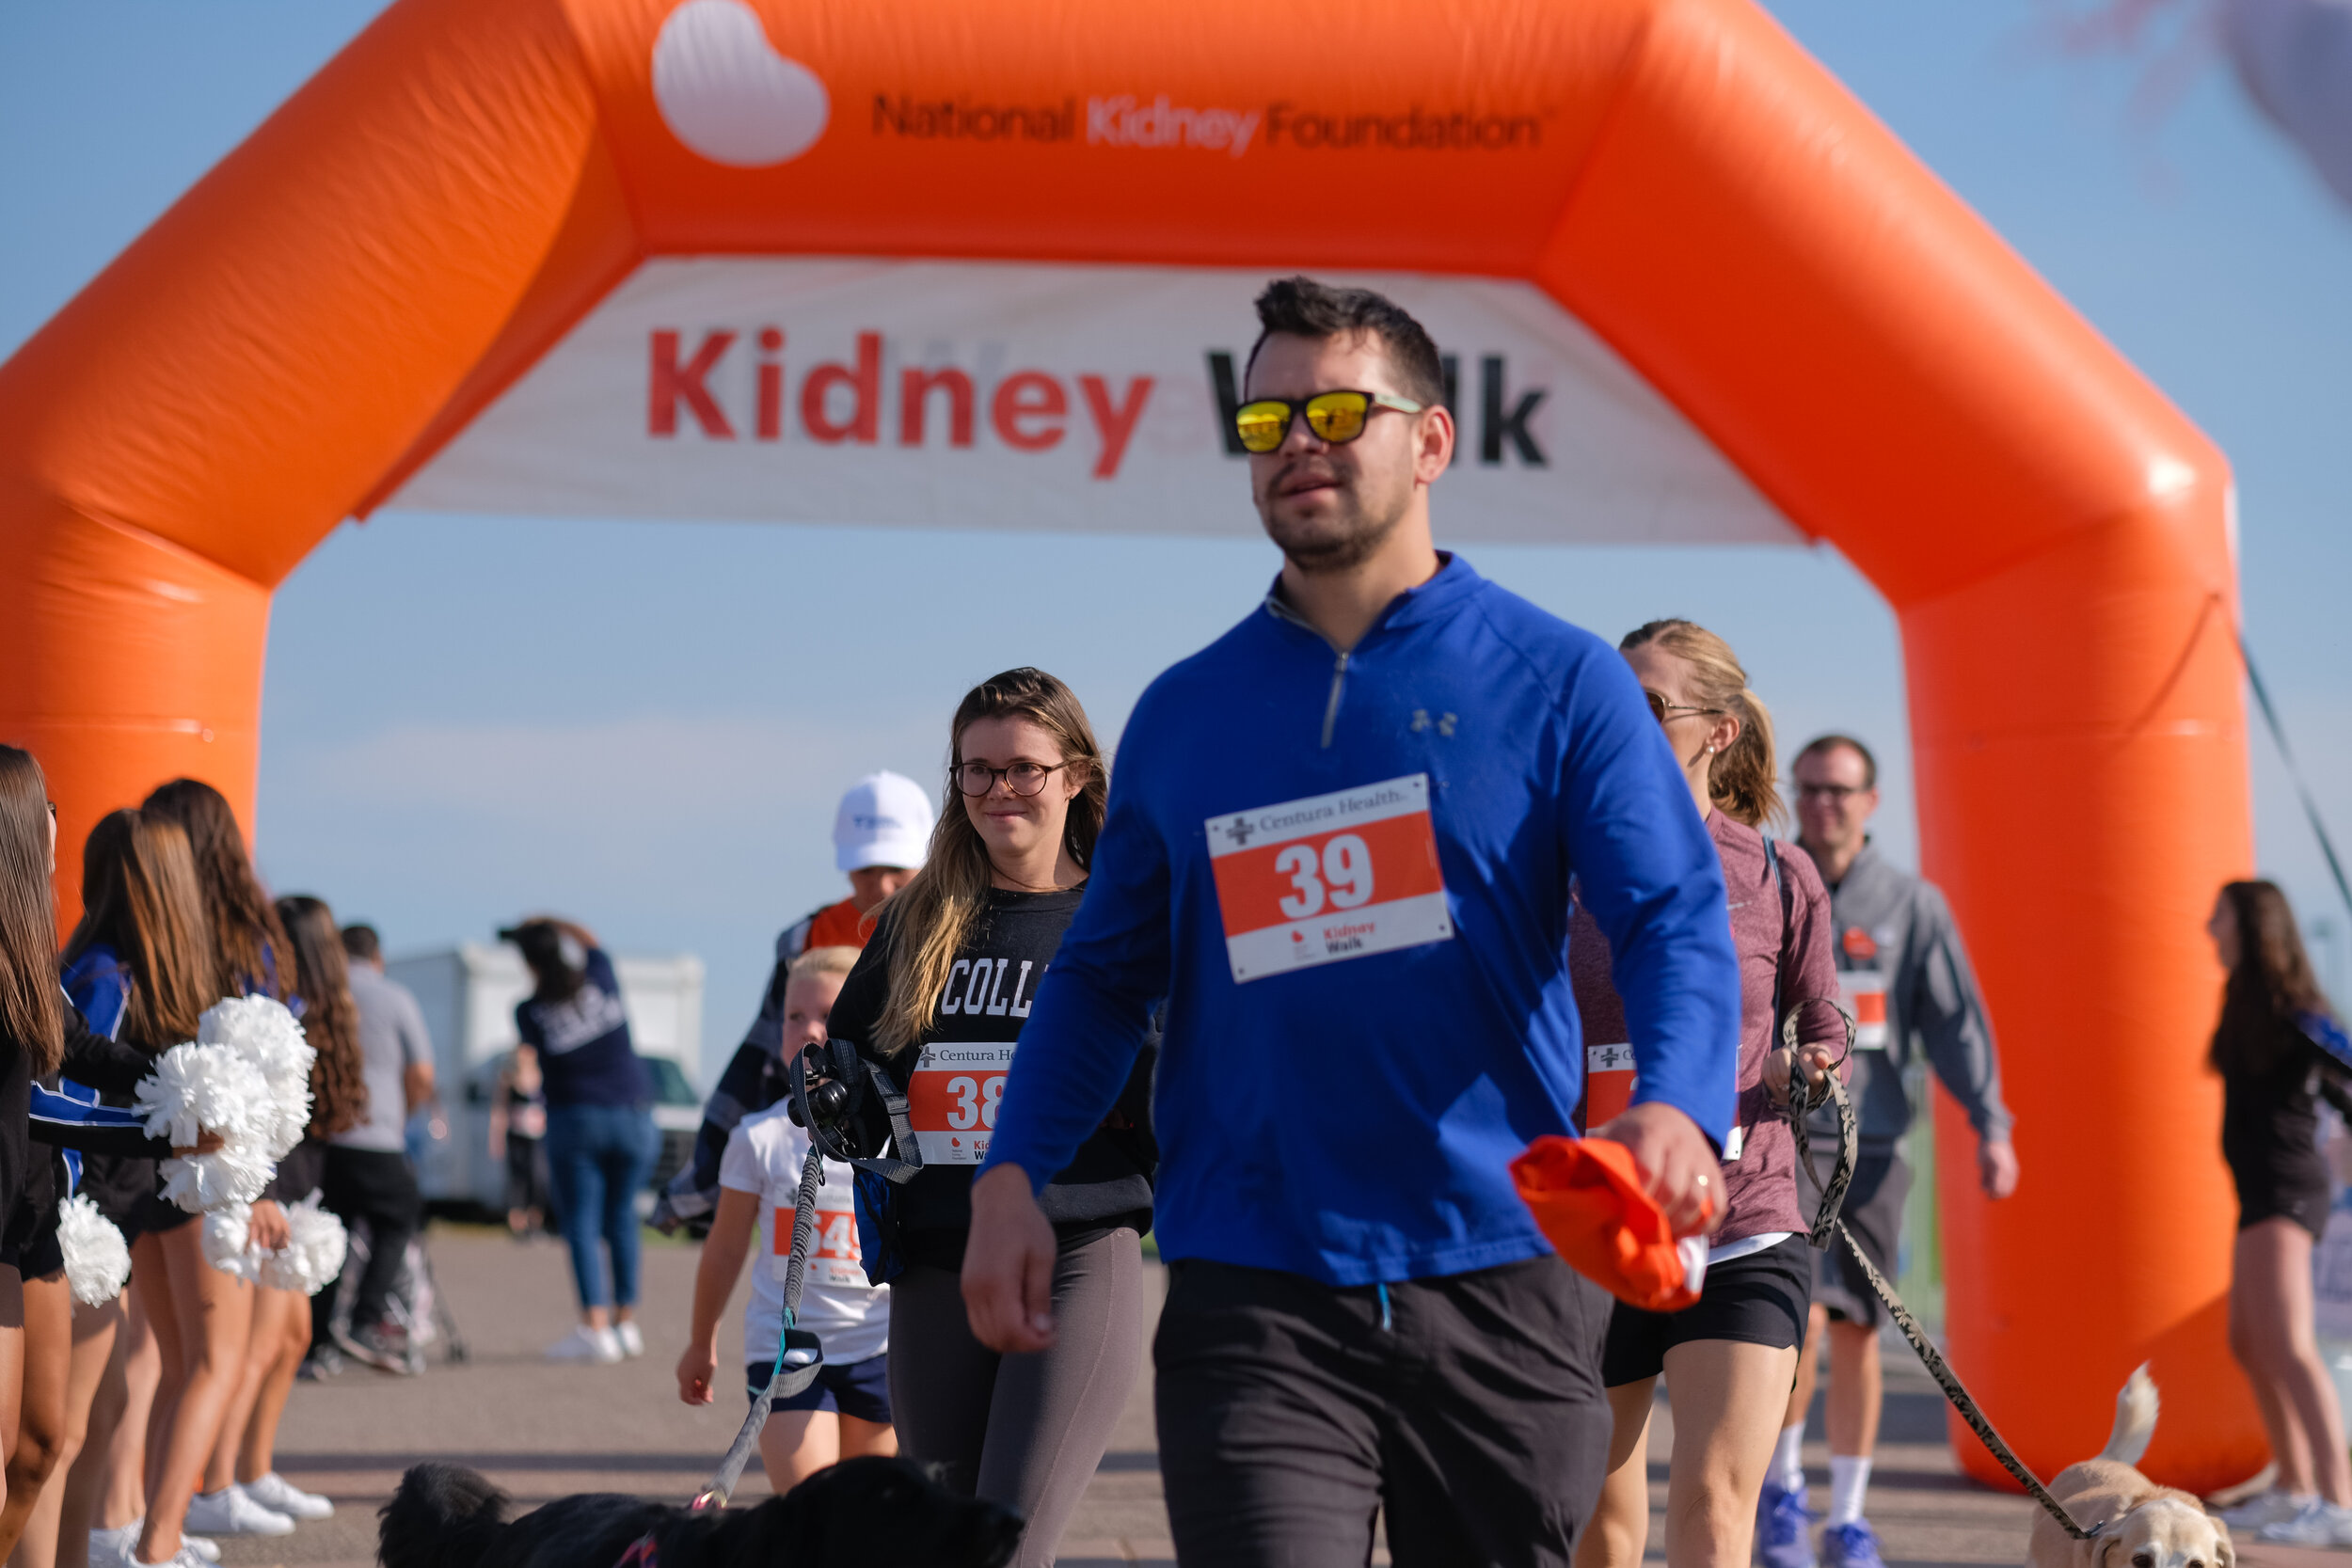 Denver Kidney Walk-115.jpg